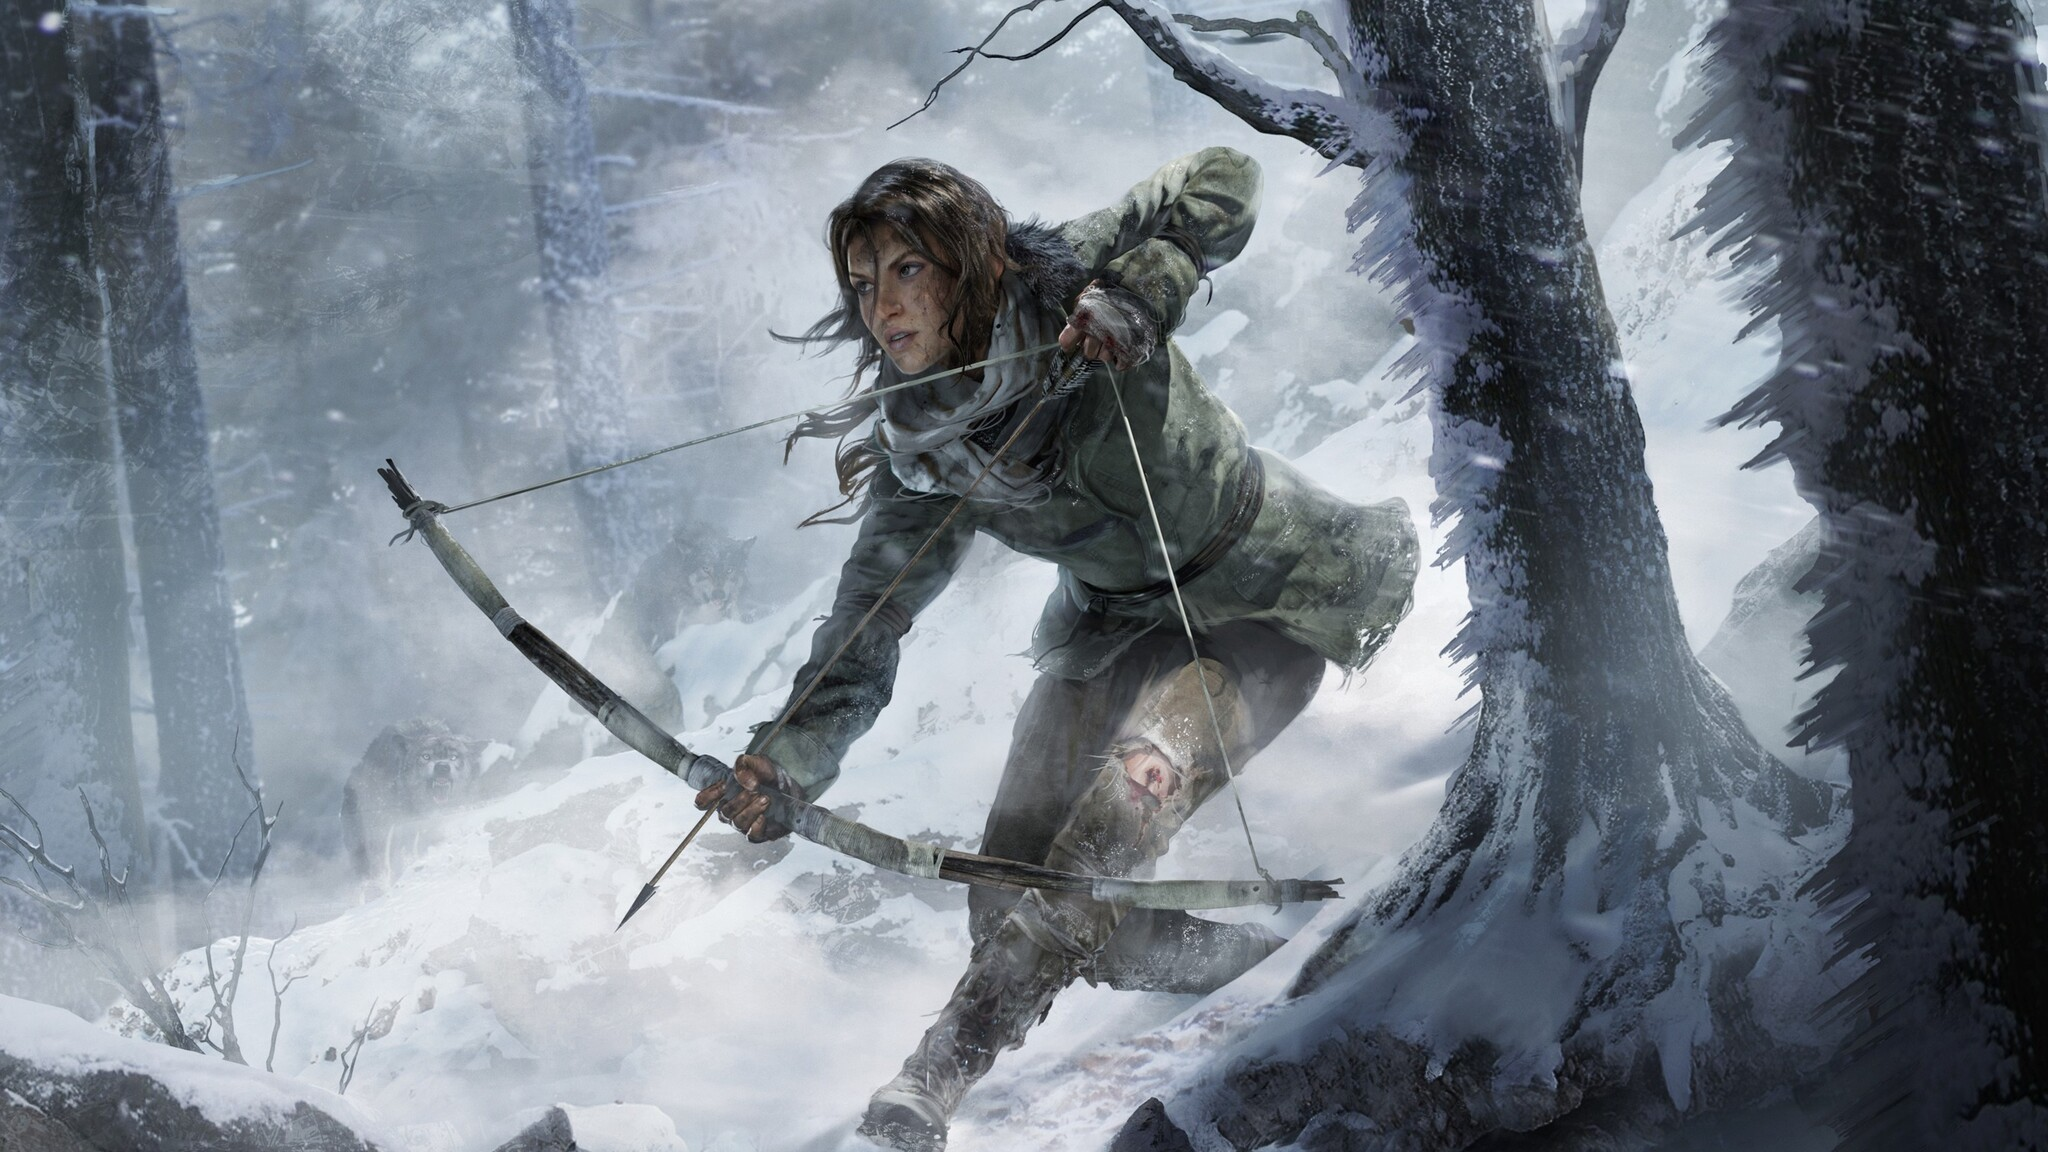 2048x1152 rise of the tomb raider game 2016 2048x1152 - Rise of the tomb raider 4k wallpaper ...